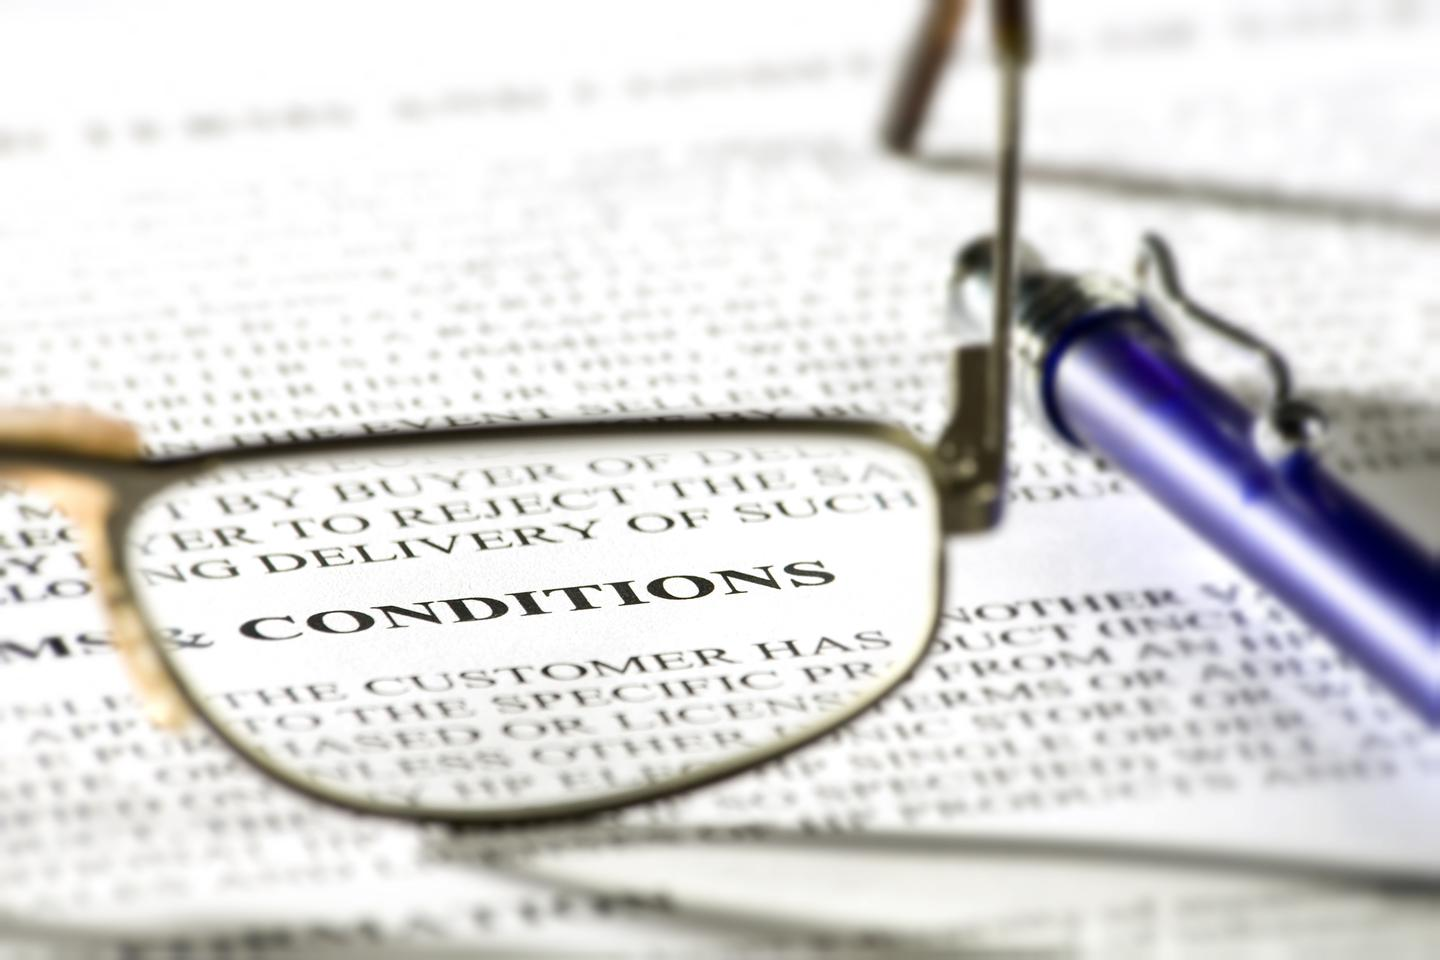 User rights inititative ToS;DR aims to bring transparency to website terms of service (Photo: Vlad Mereuta/Shutterstock)